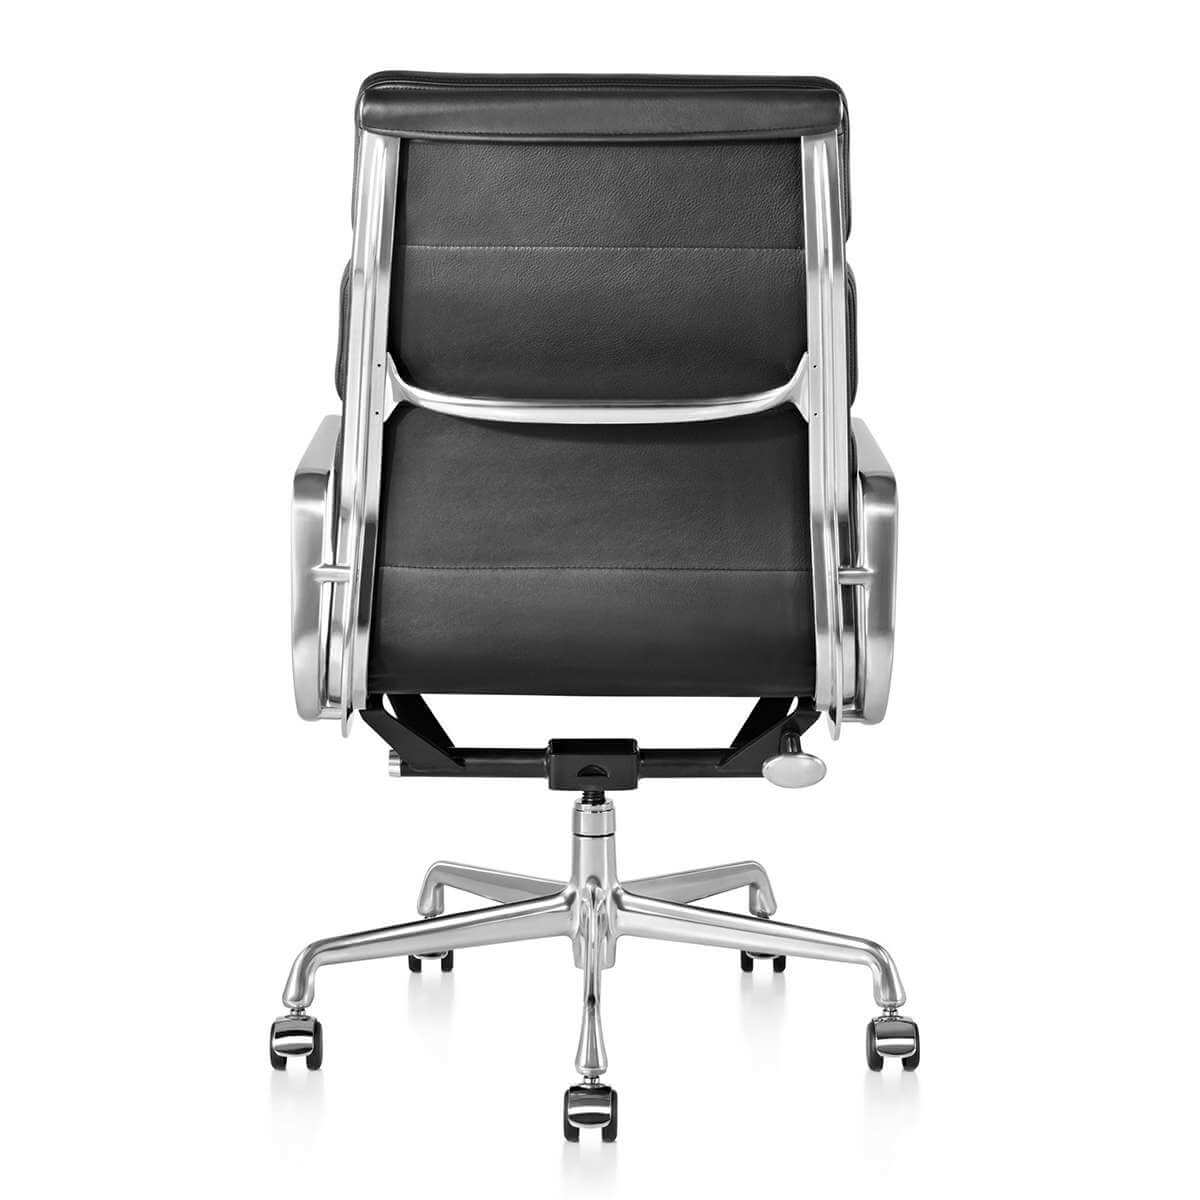 Ergonomic Office Chair - Eames 2